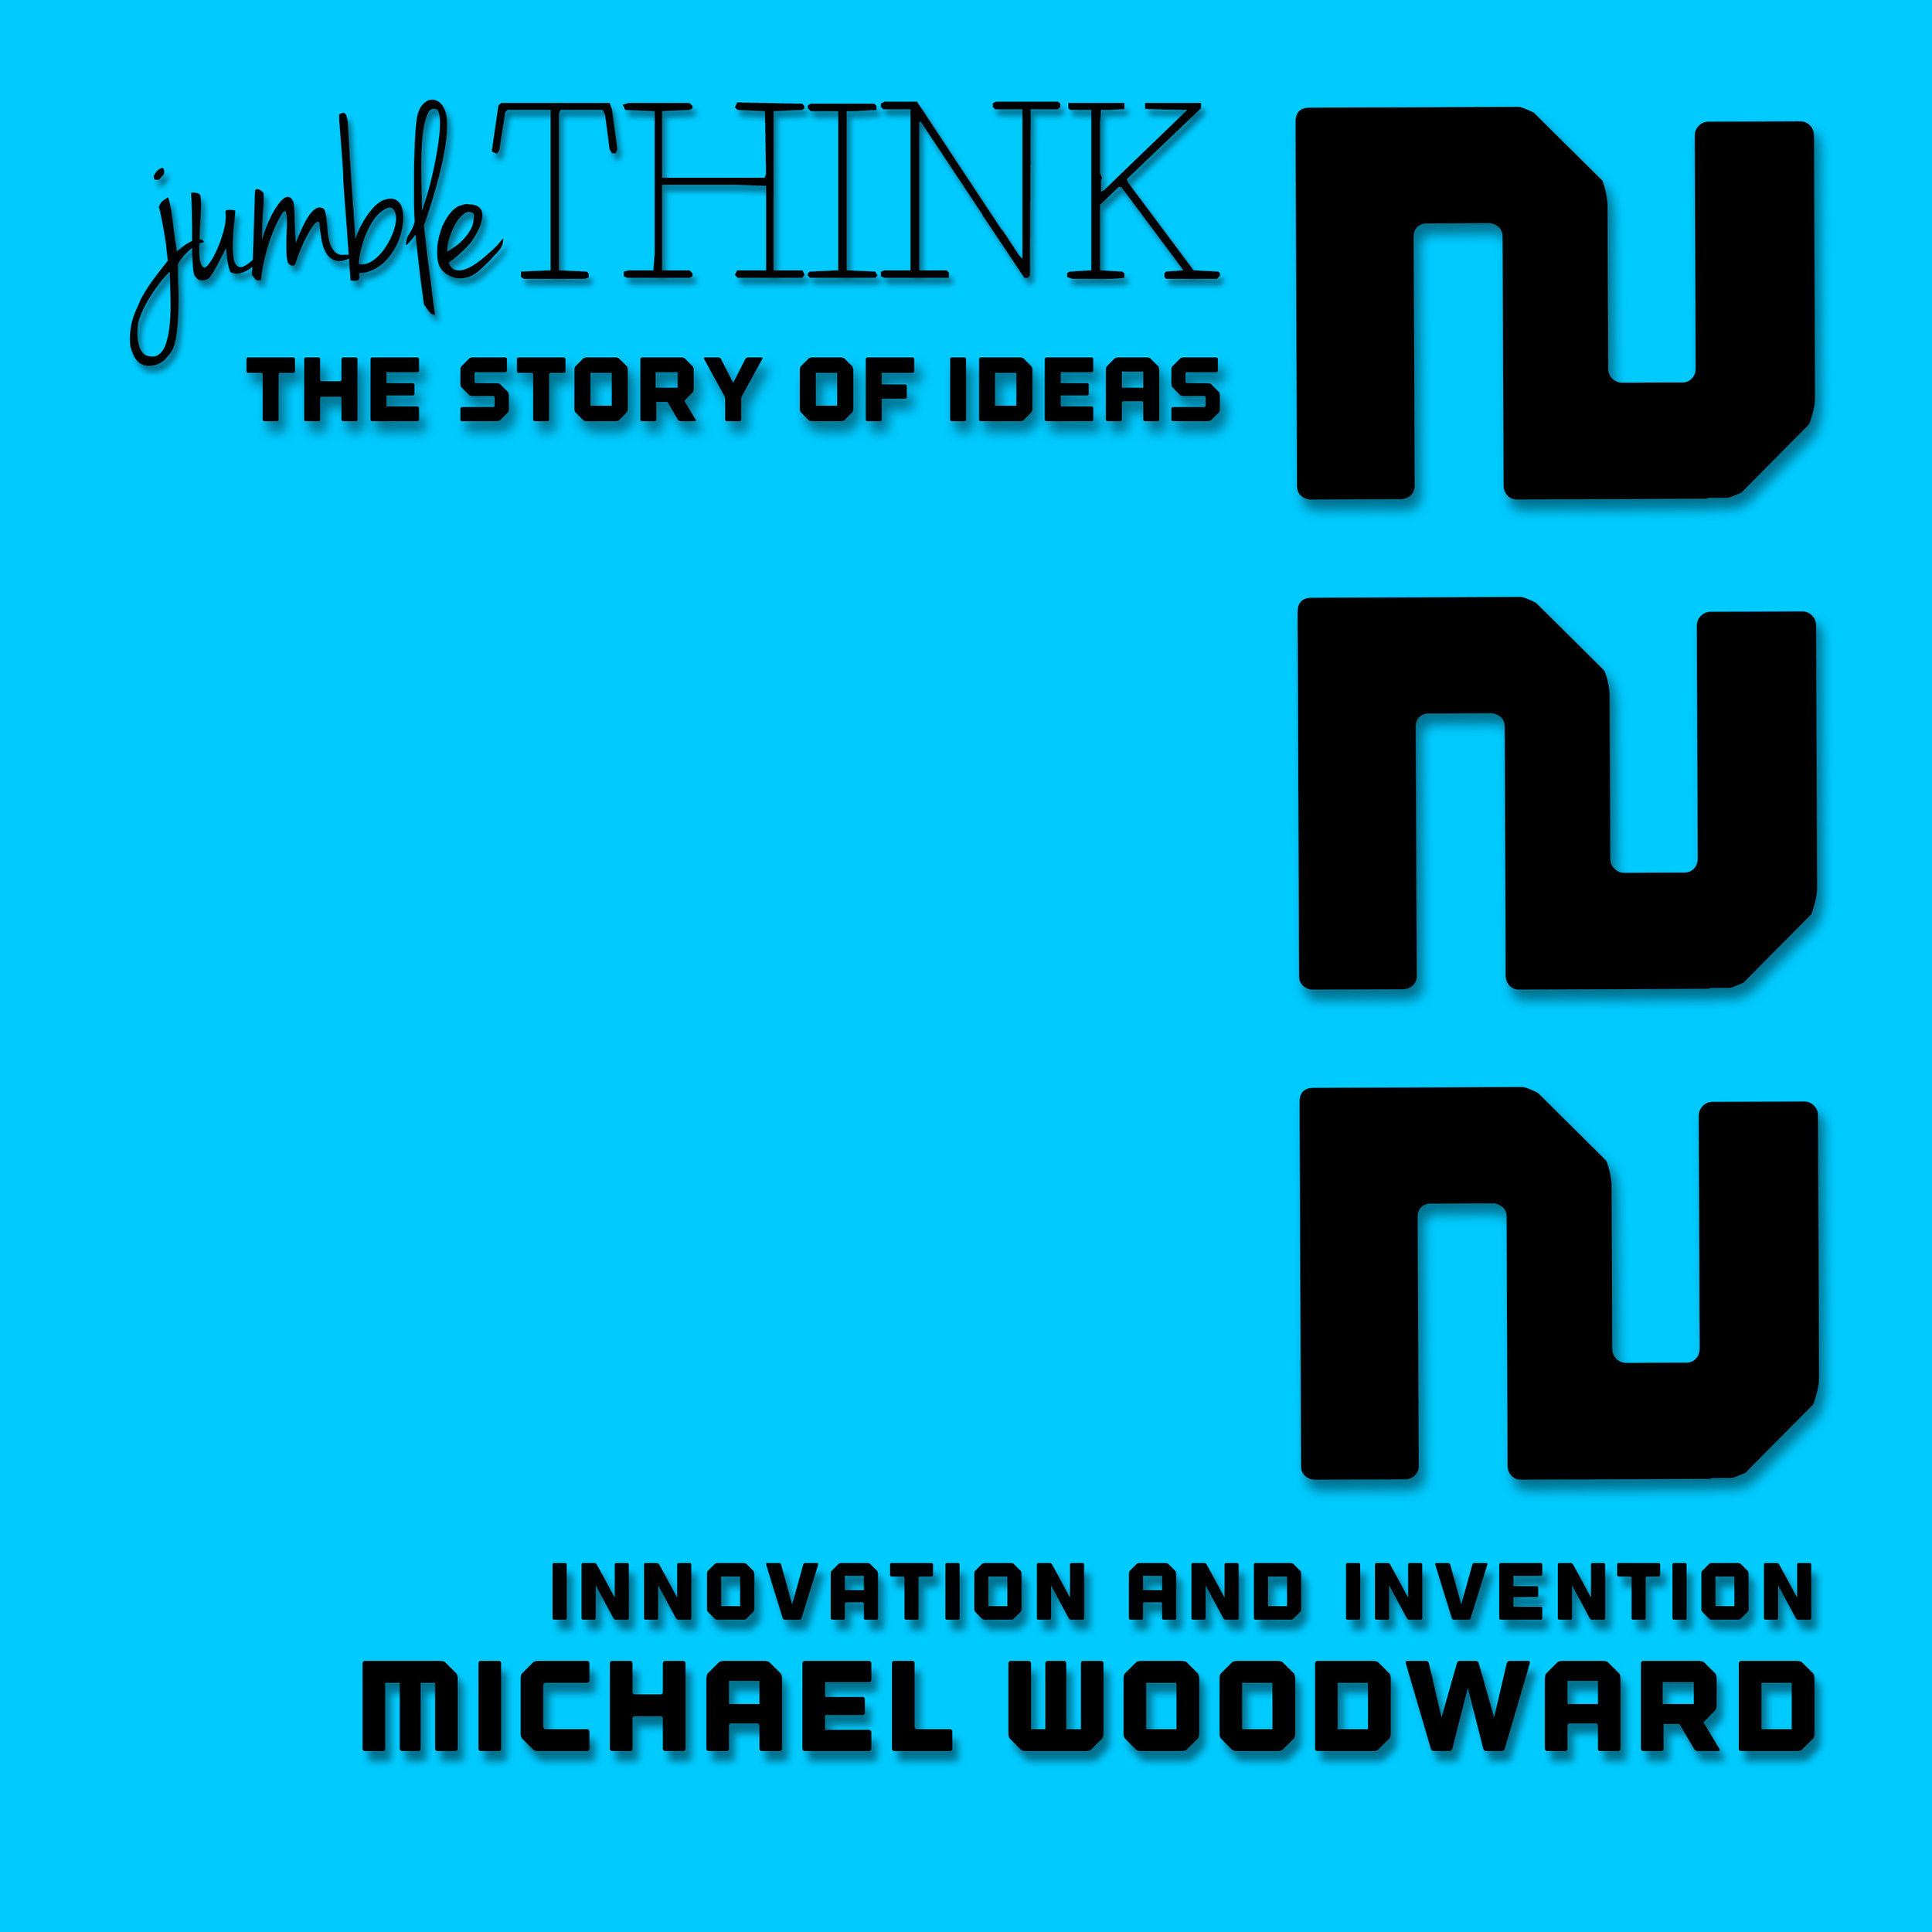 The Art of Innovation and Invention